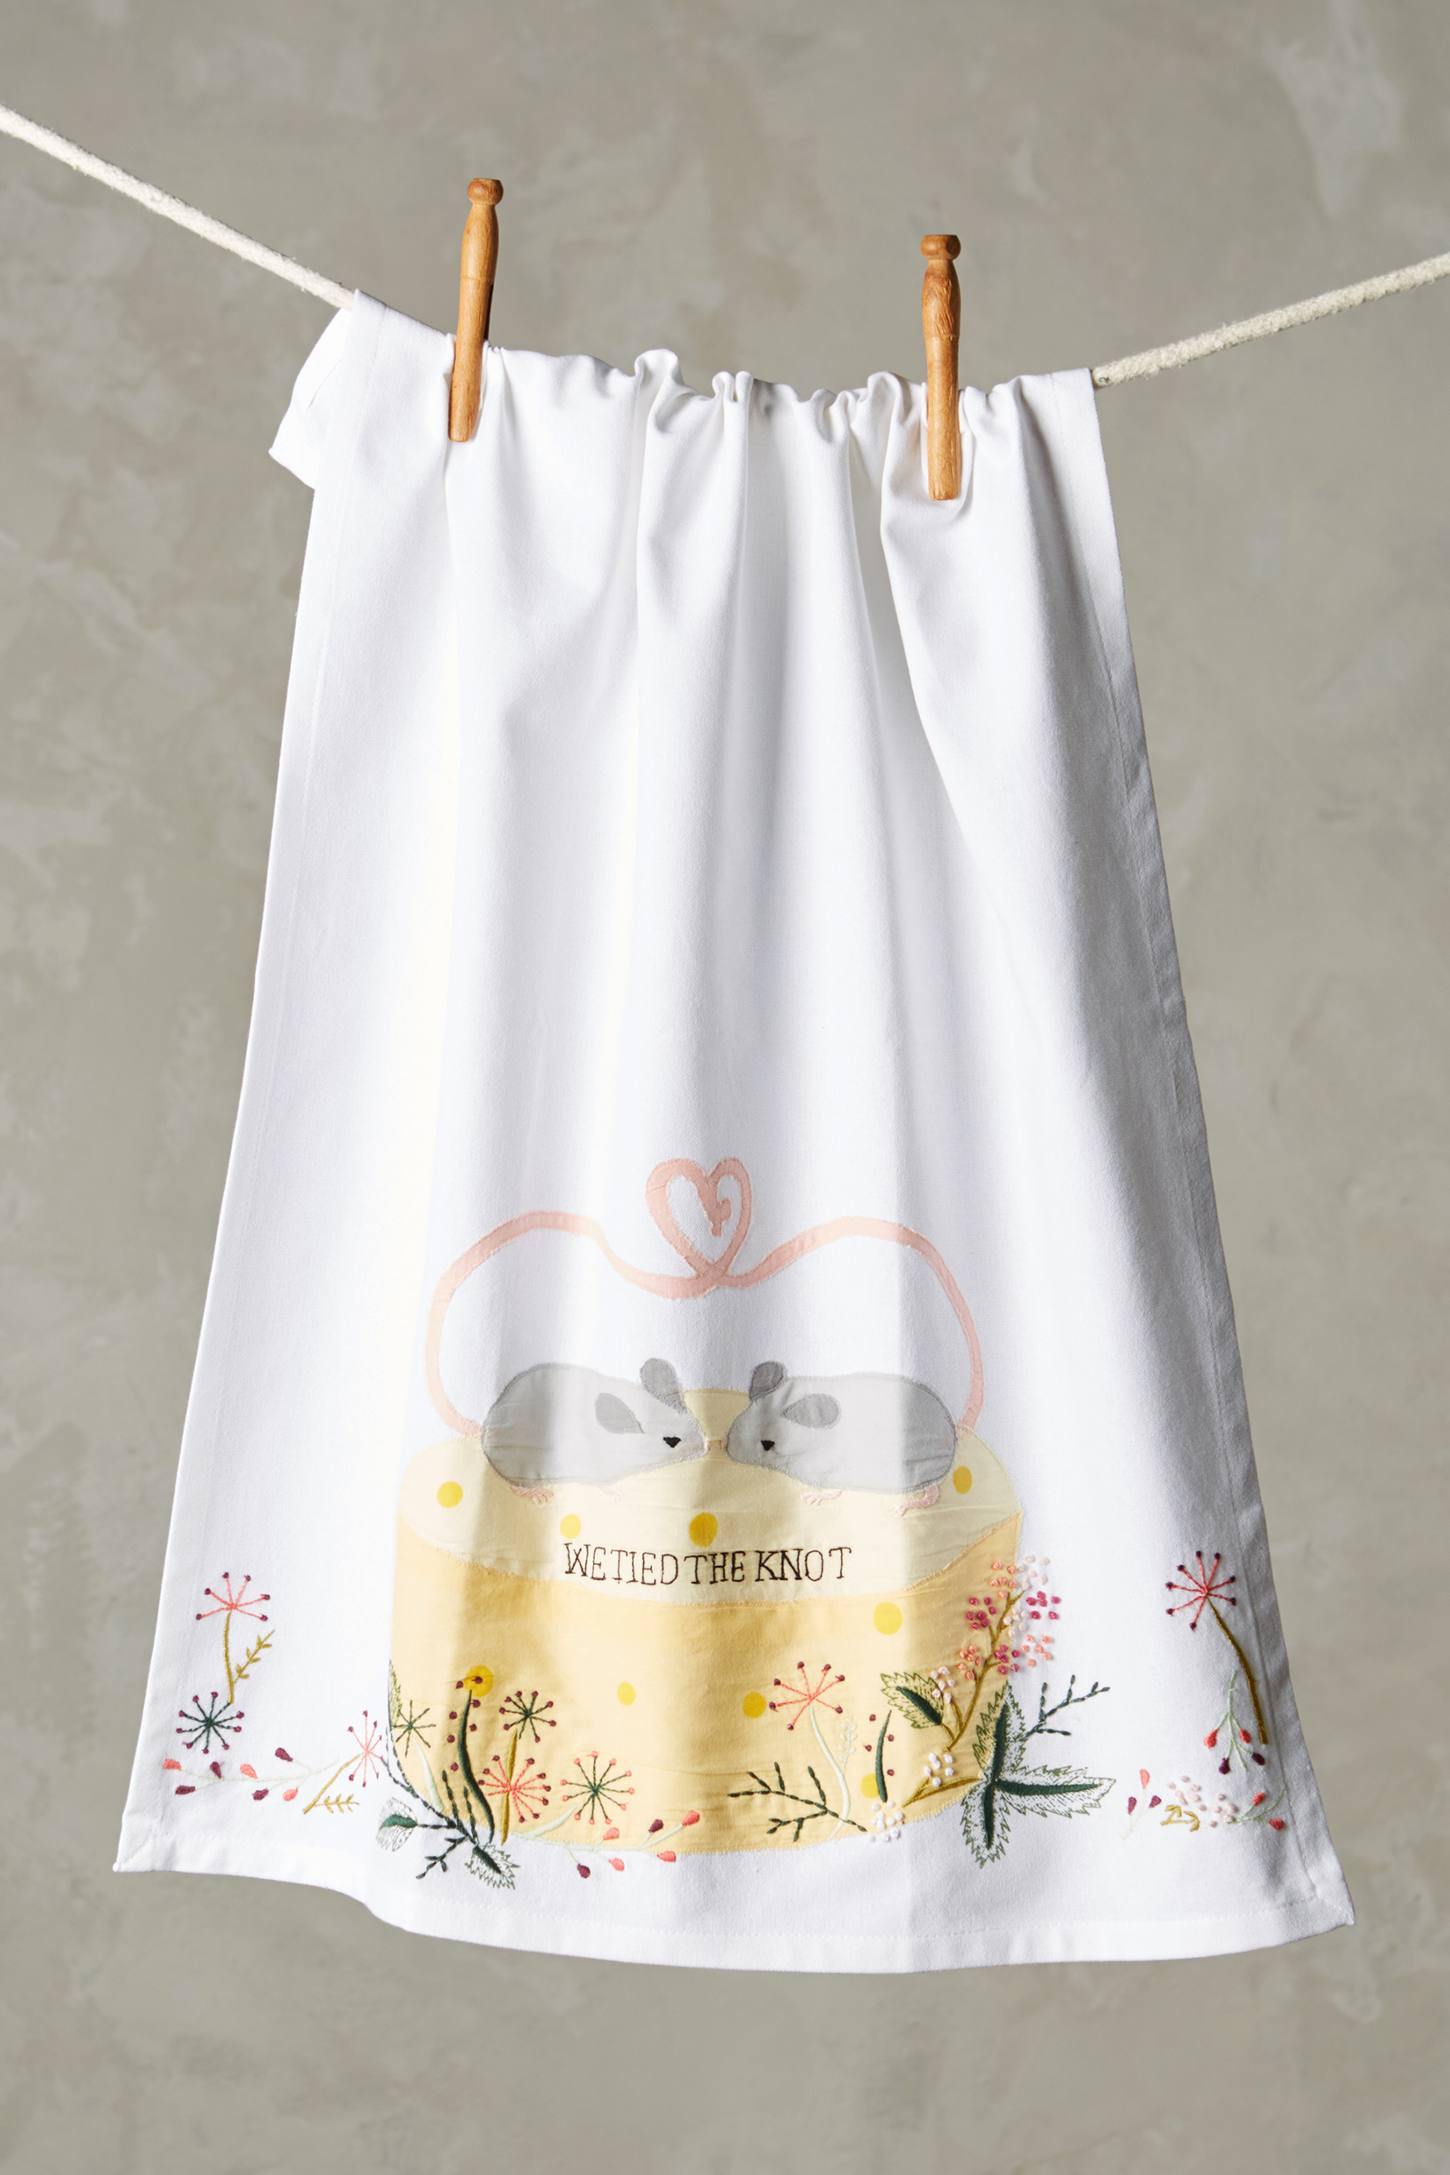 Tied The Knot Tea Towel